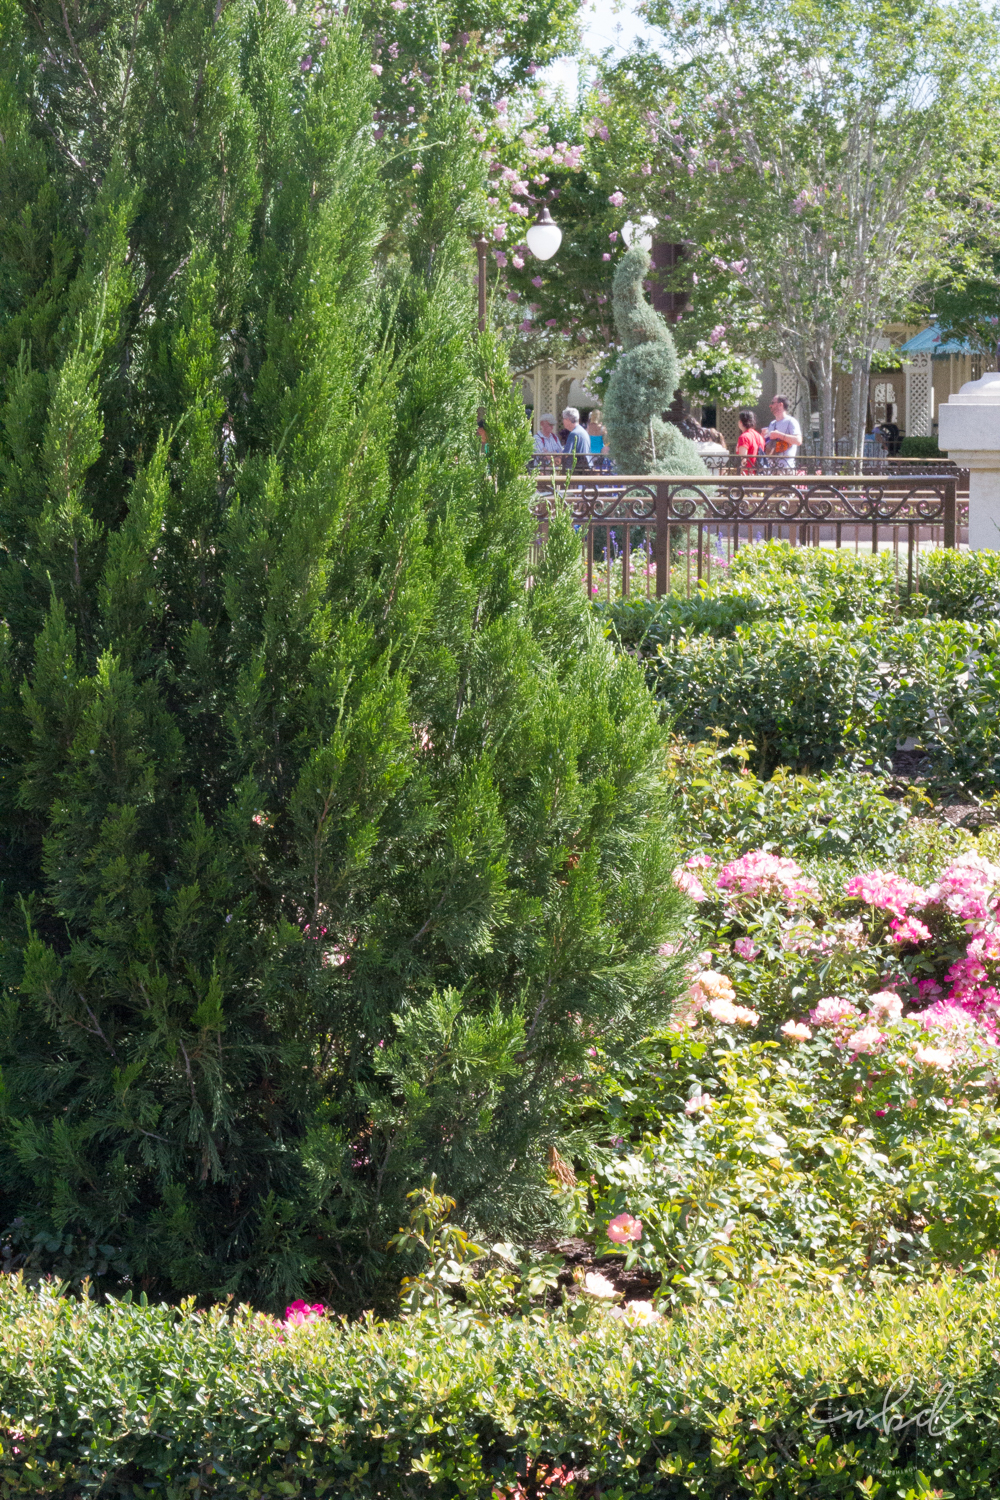 Magic Kingdom Magic Kingdom landscaping